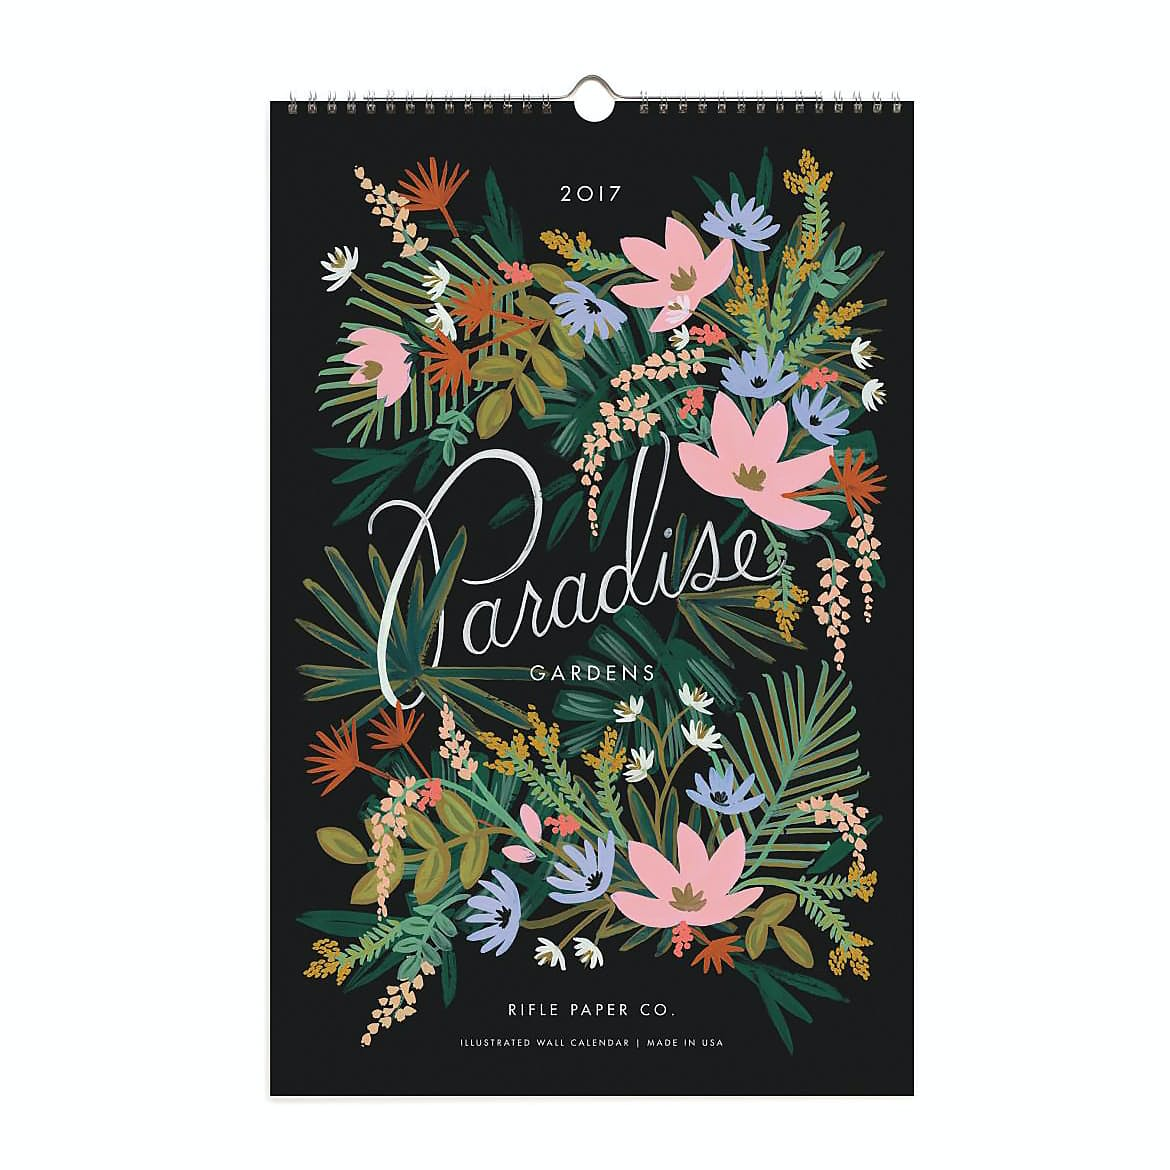 Ihmkkgashh rifle paper co 2017 paradise calendar home 0 original